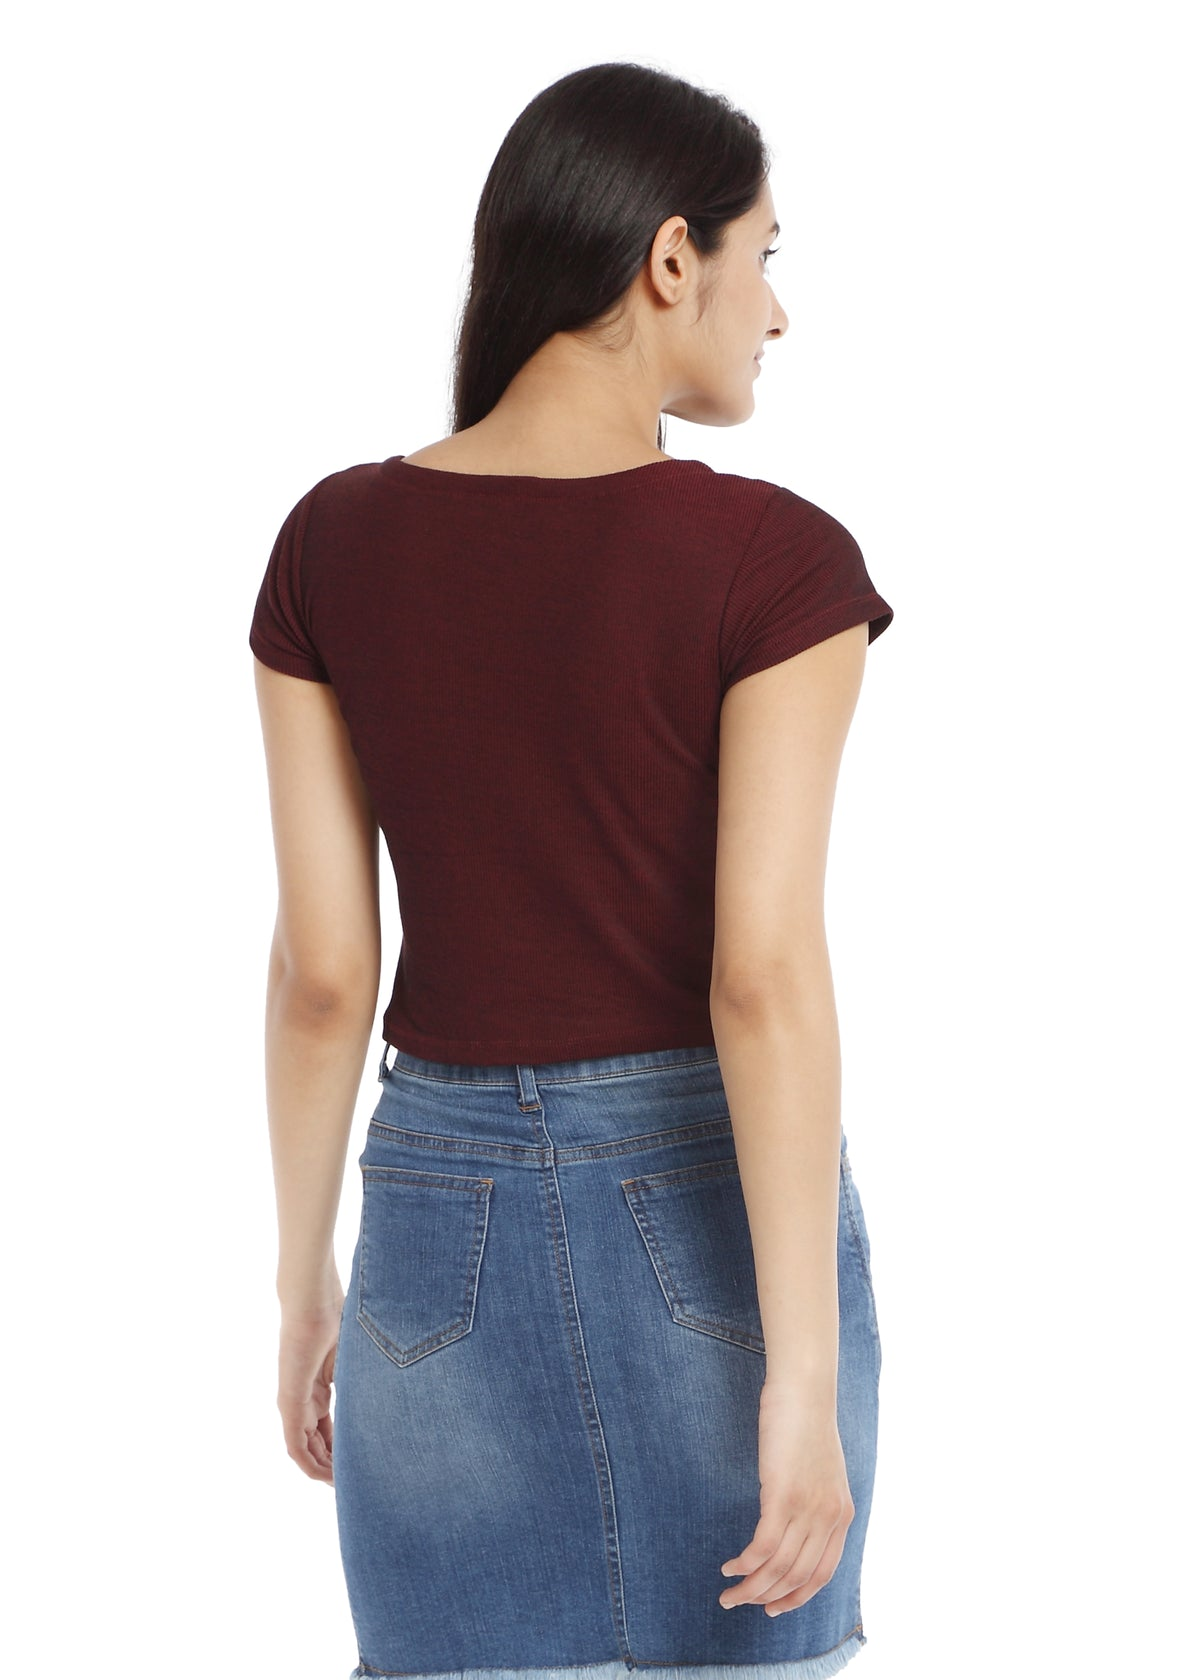 Maroon Ribbed knit crop top with buttons